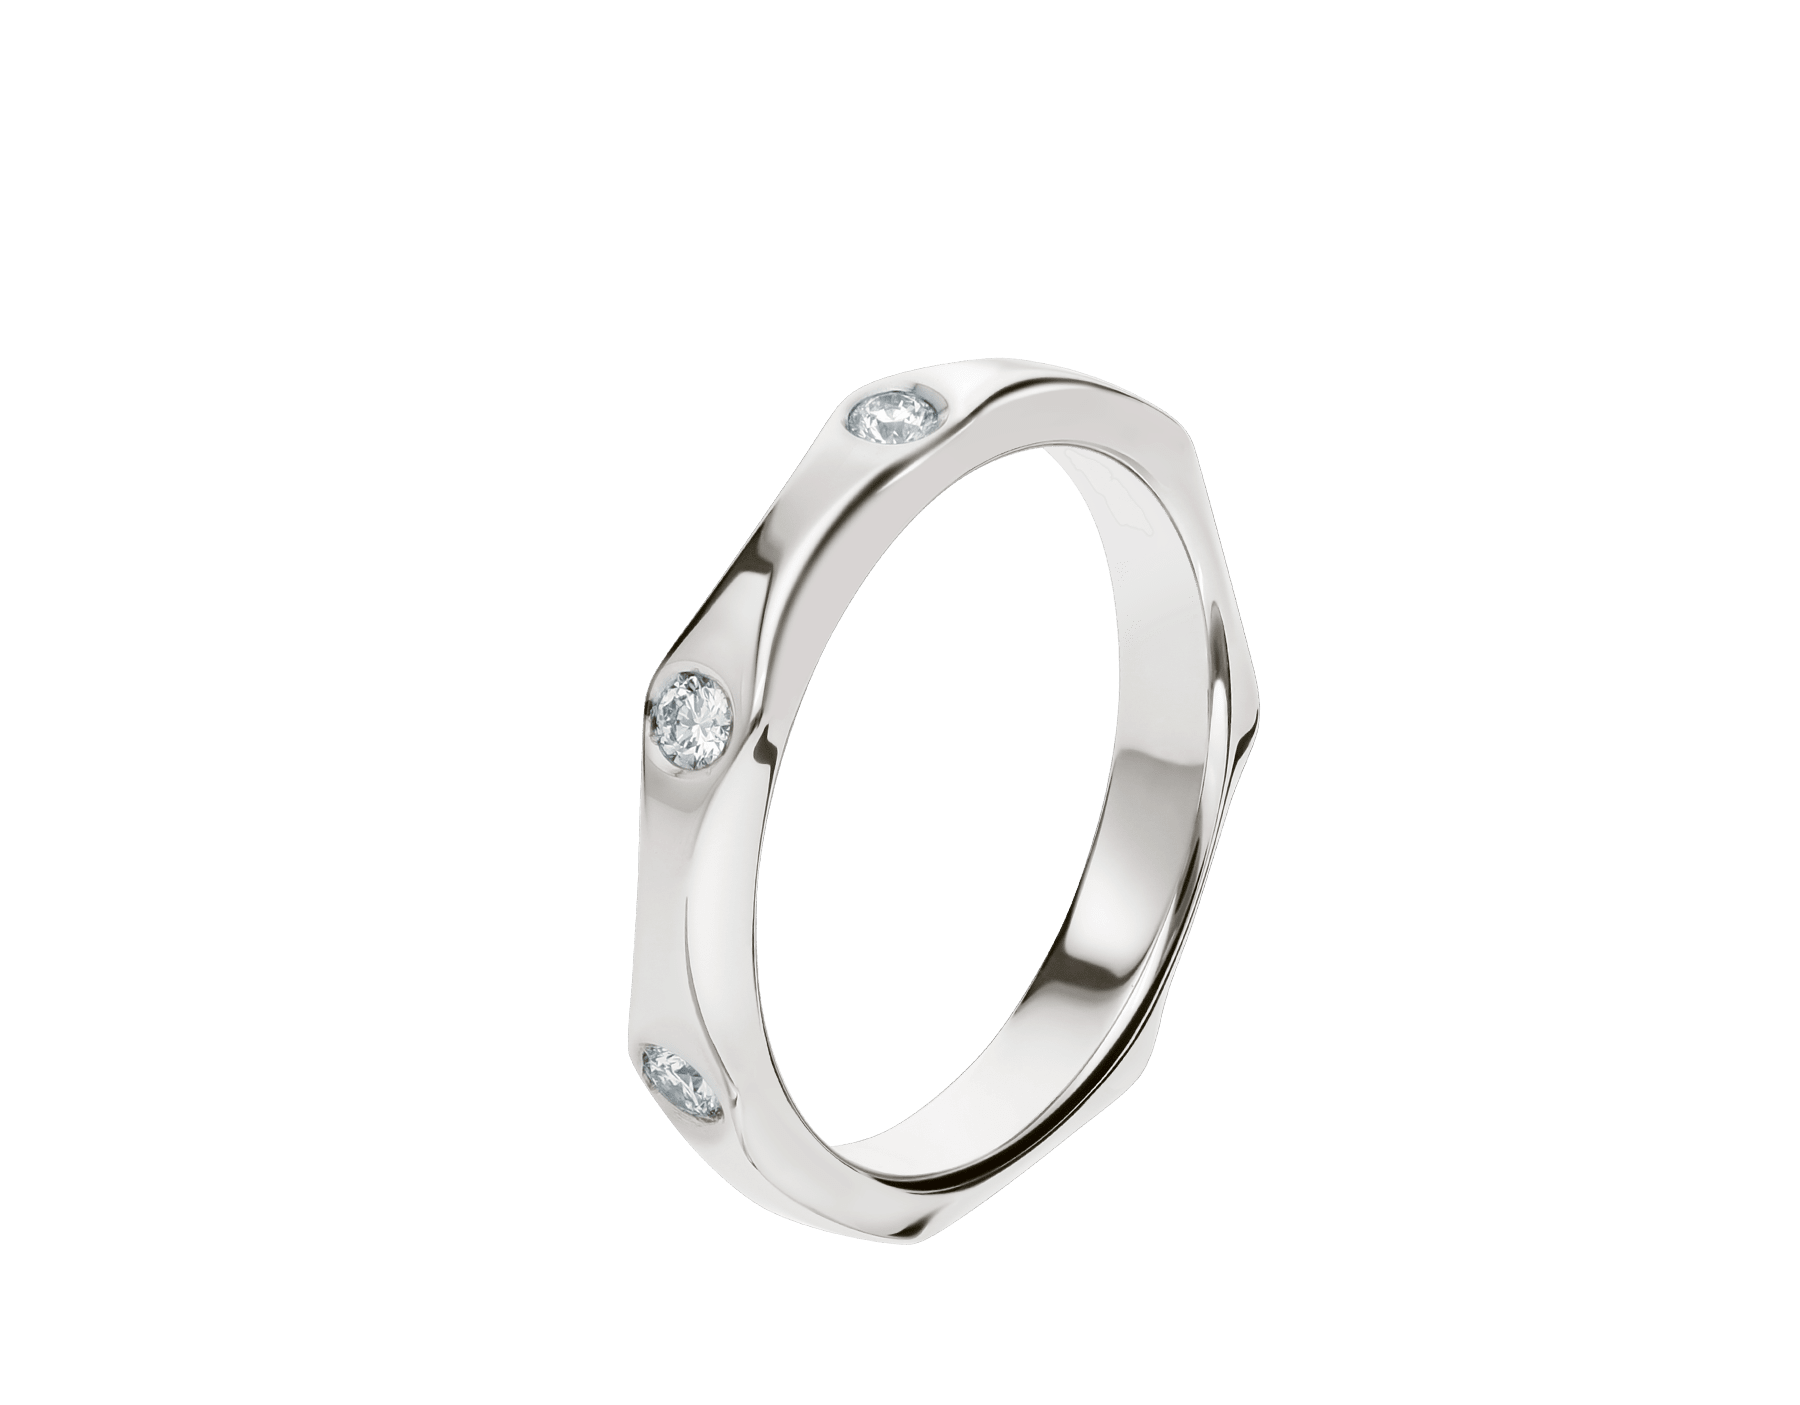 Infinito wedding band in platinum, set with diamonds. AN857696 image 1